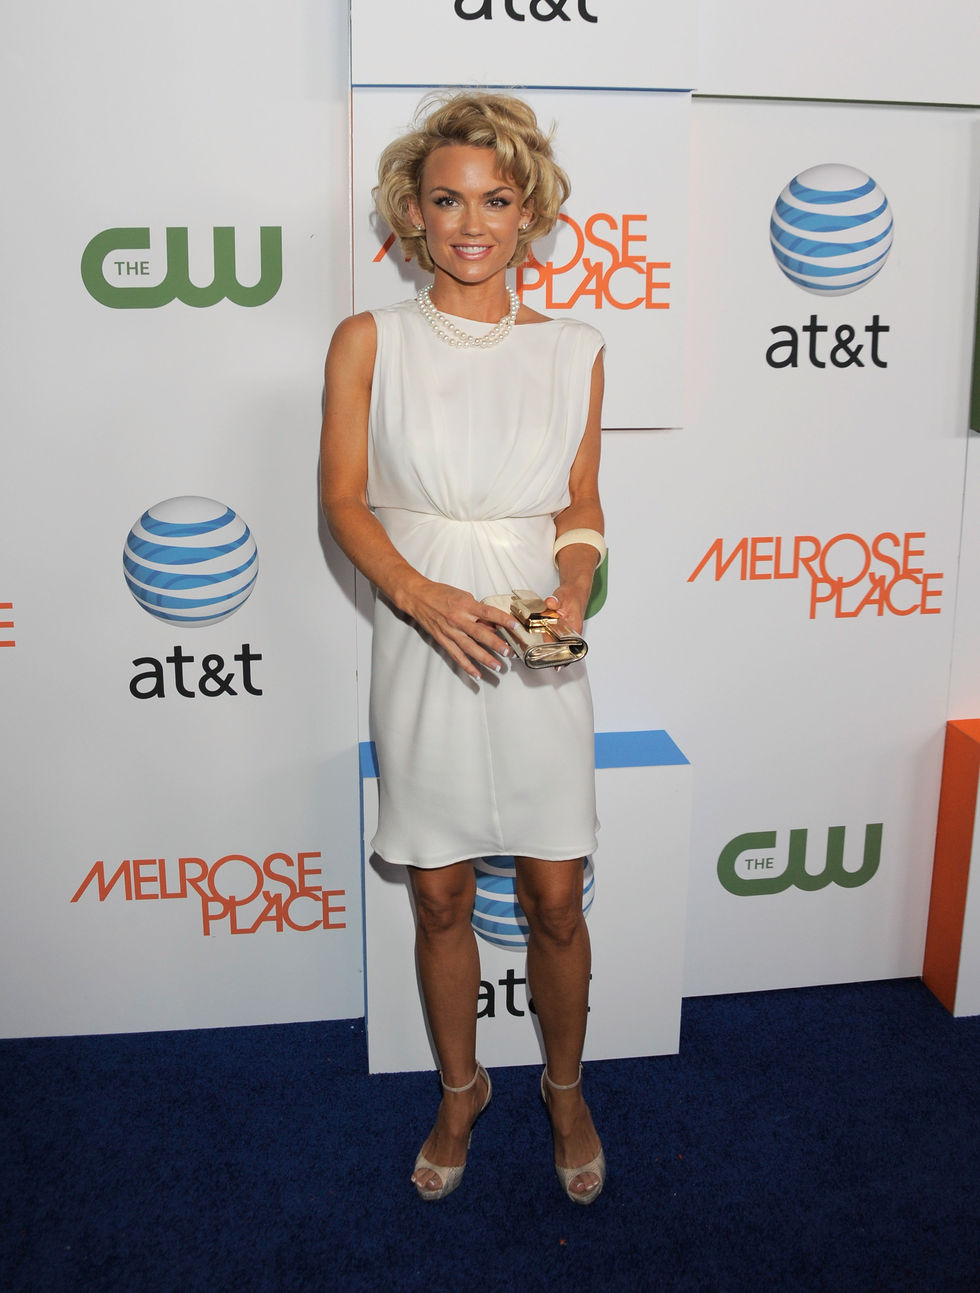 kelly-carlson-melrose-place-launch-party-in-los-angeles-01